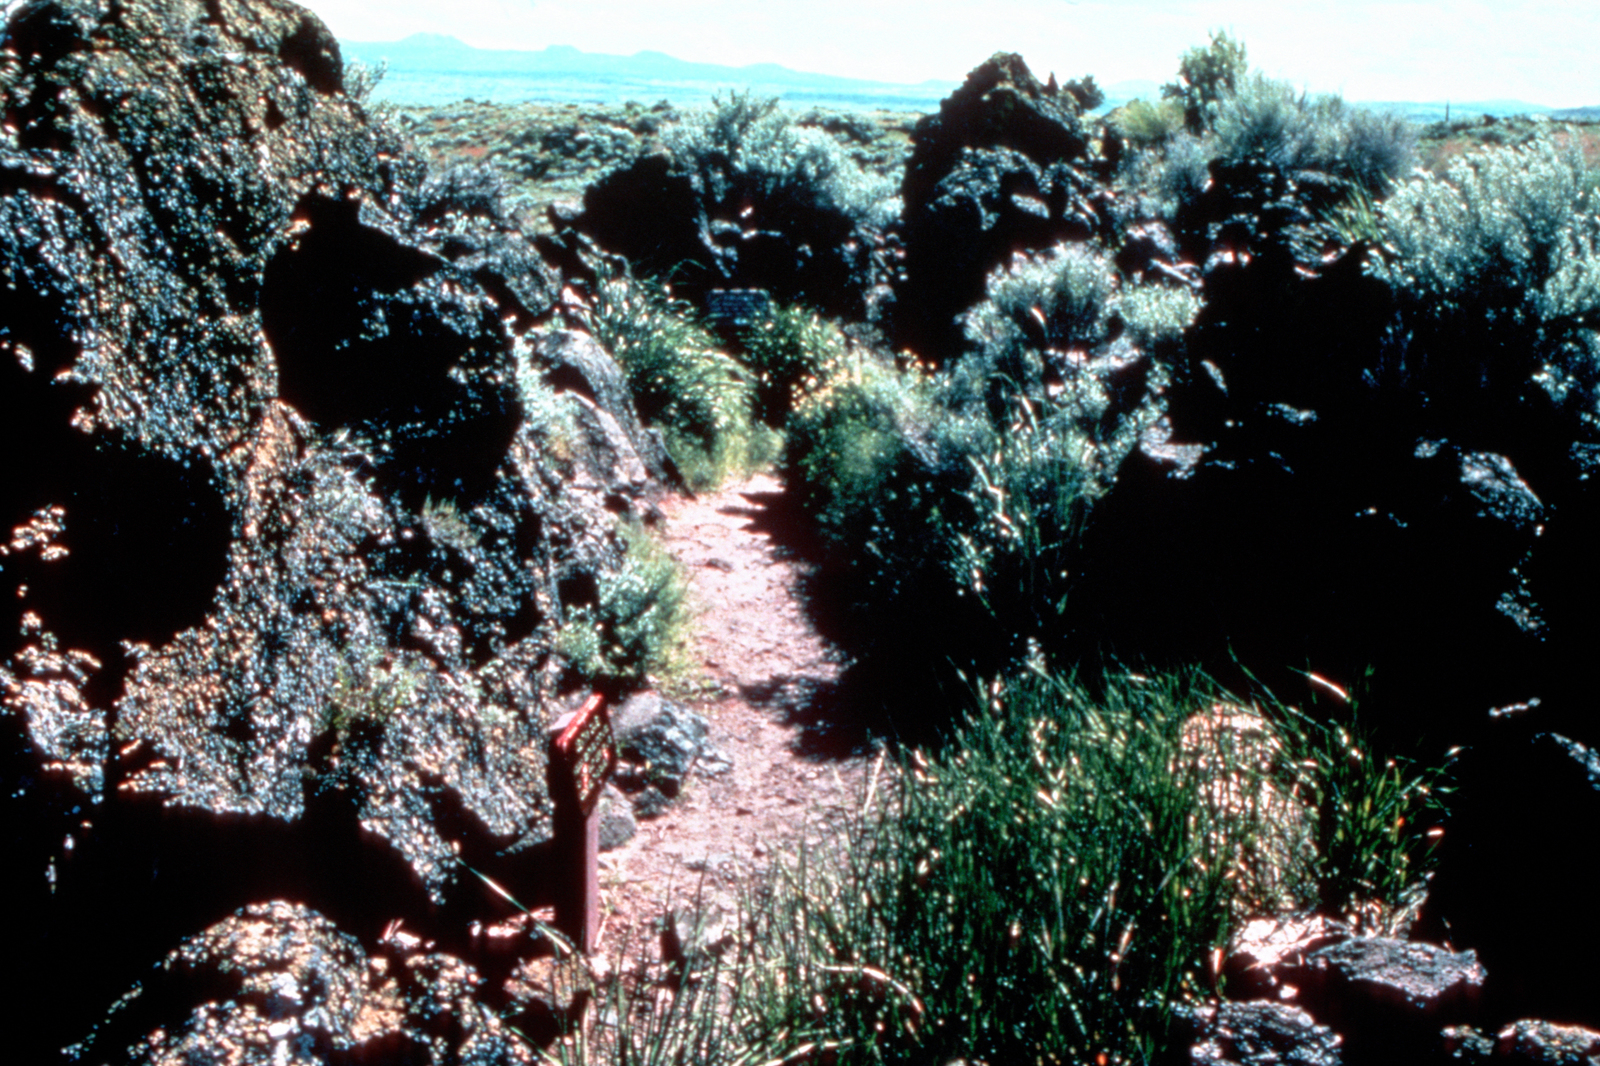 Volcanic Legacy Scenic Byway - Captain Jack's Stronghold in Lava Beds National Monument